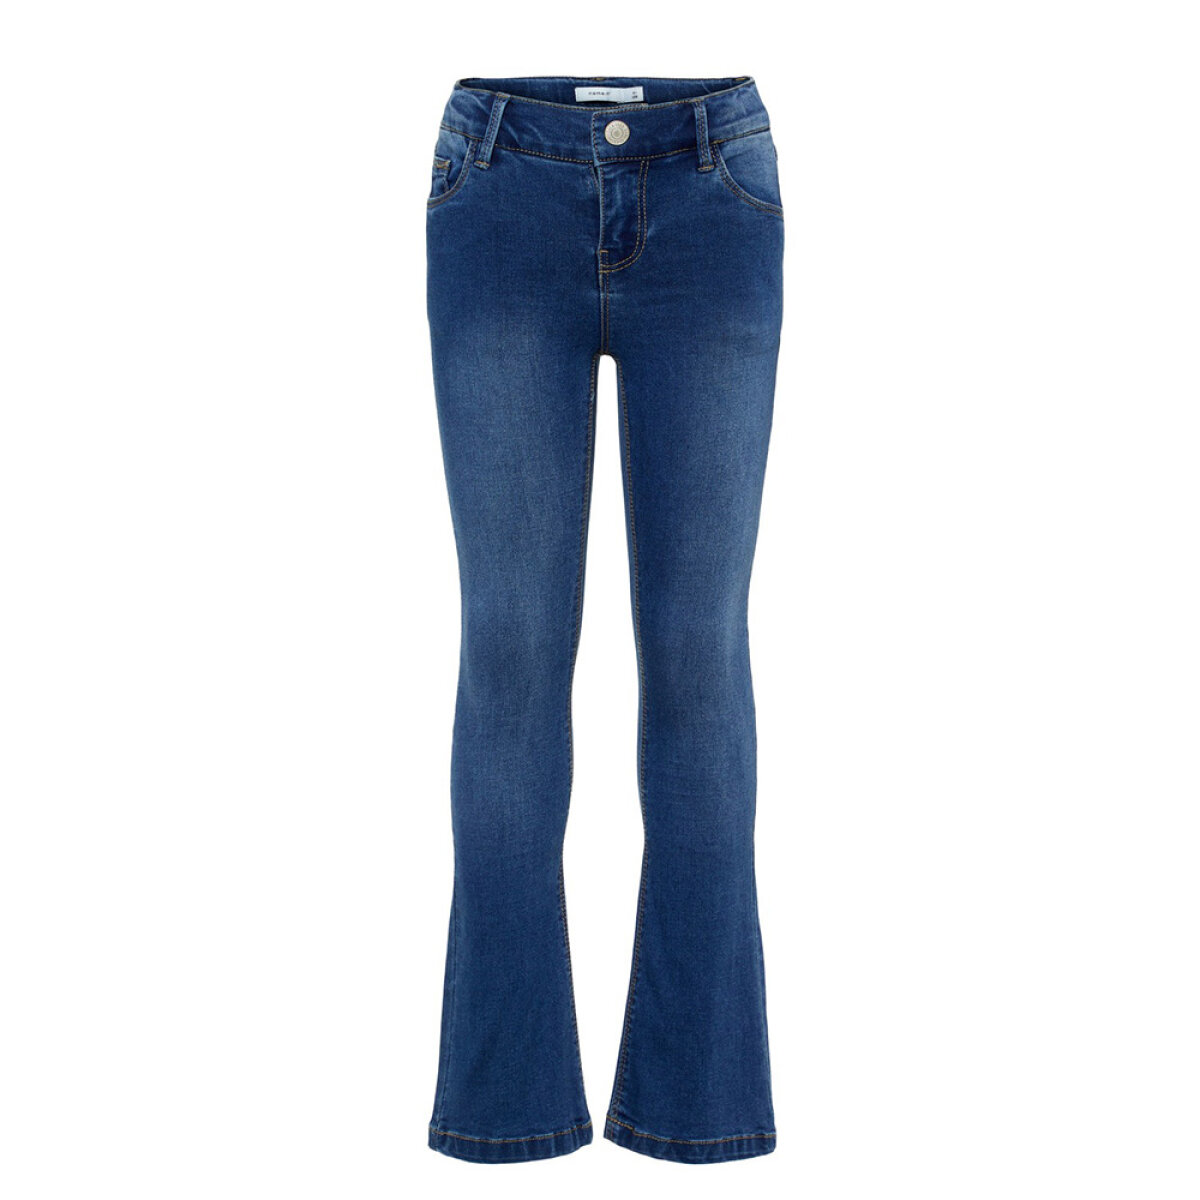 Name It meisjes skinny flaired jeans NKFPOLLY blauw